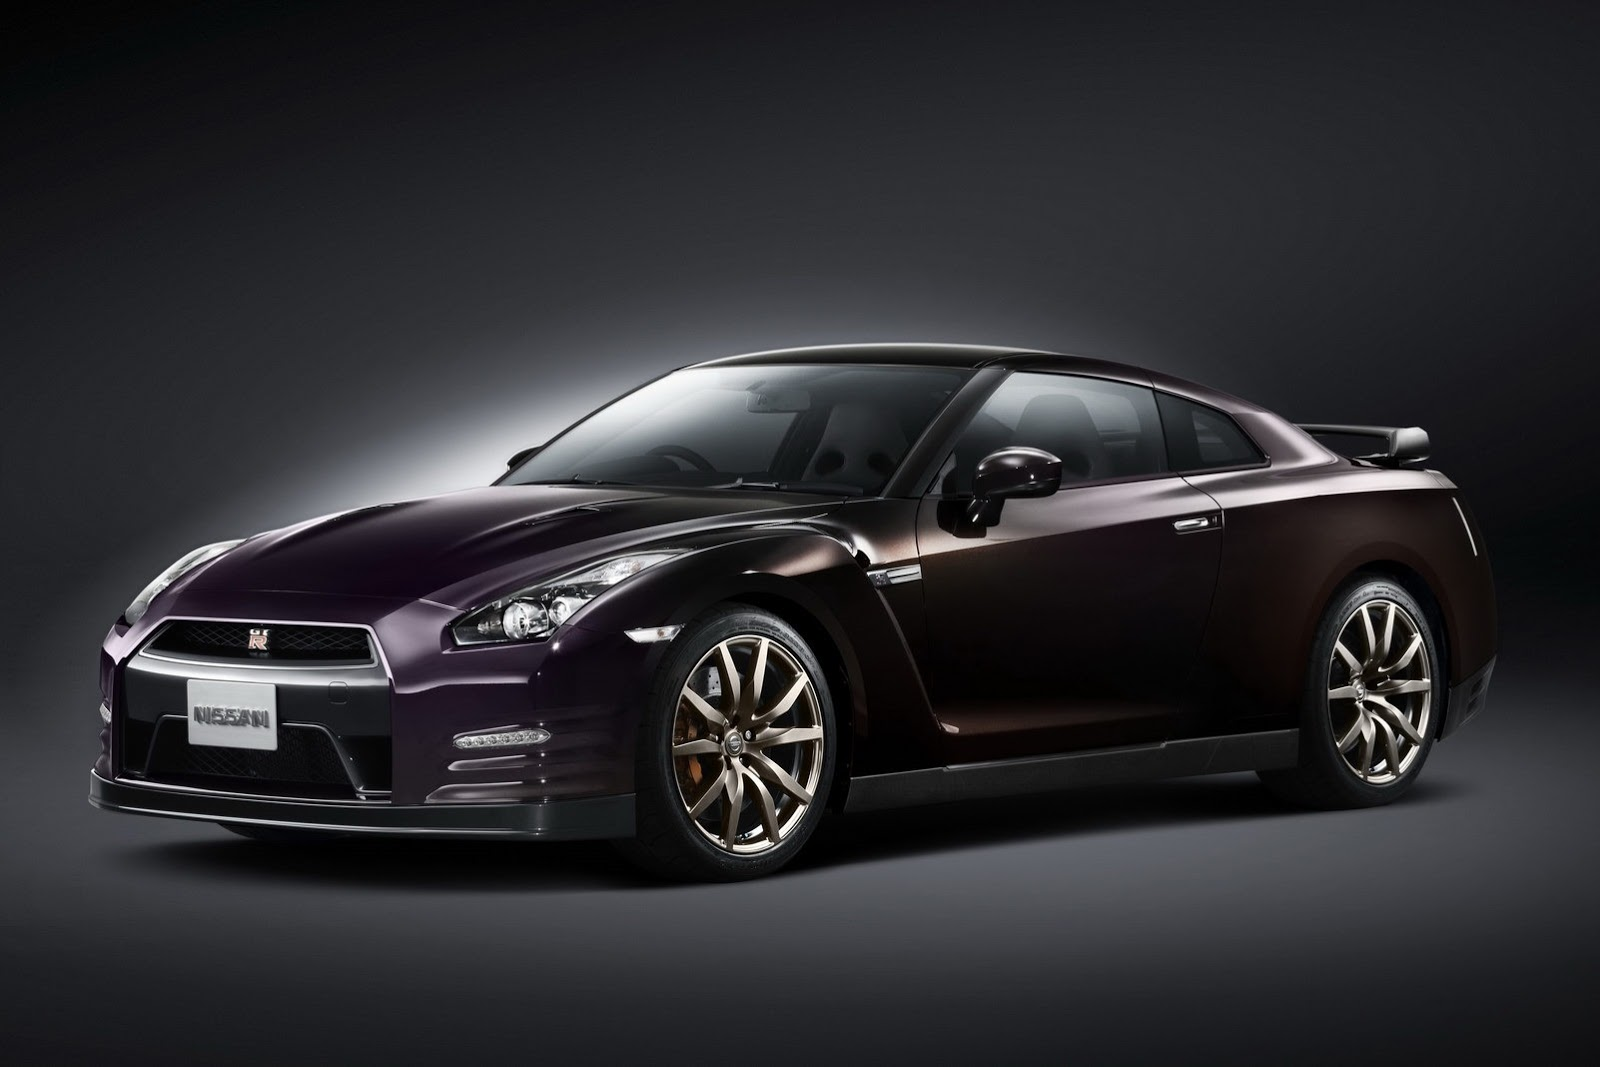 Nissan GTR Midnight Purple